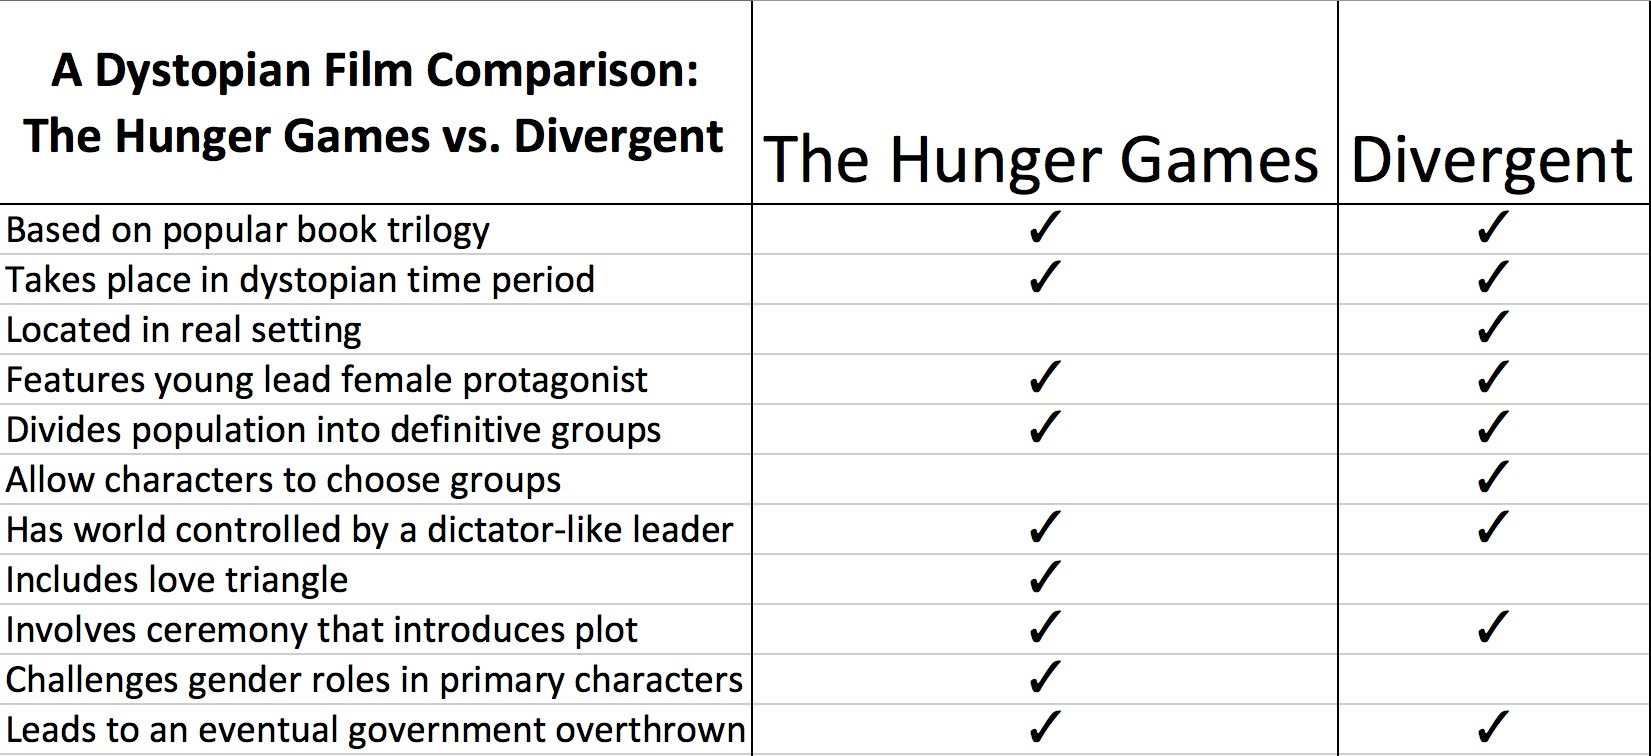 a dystopian film comparison the hunger games 2012 vs divergent hg vs divergent